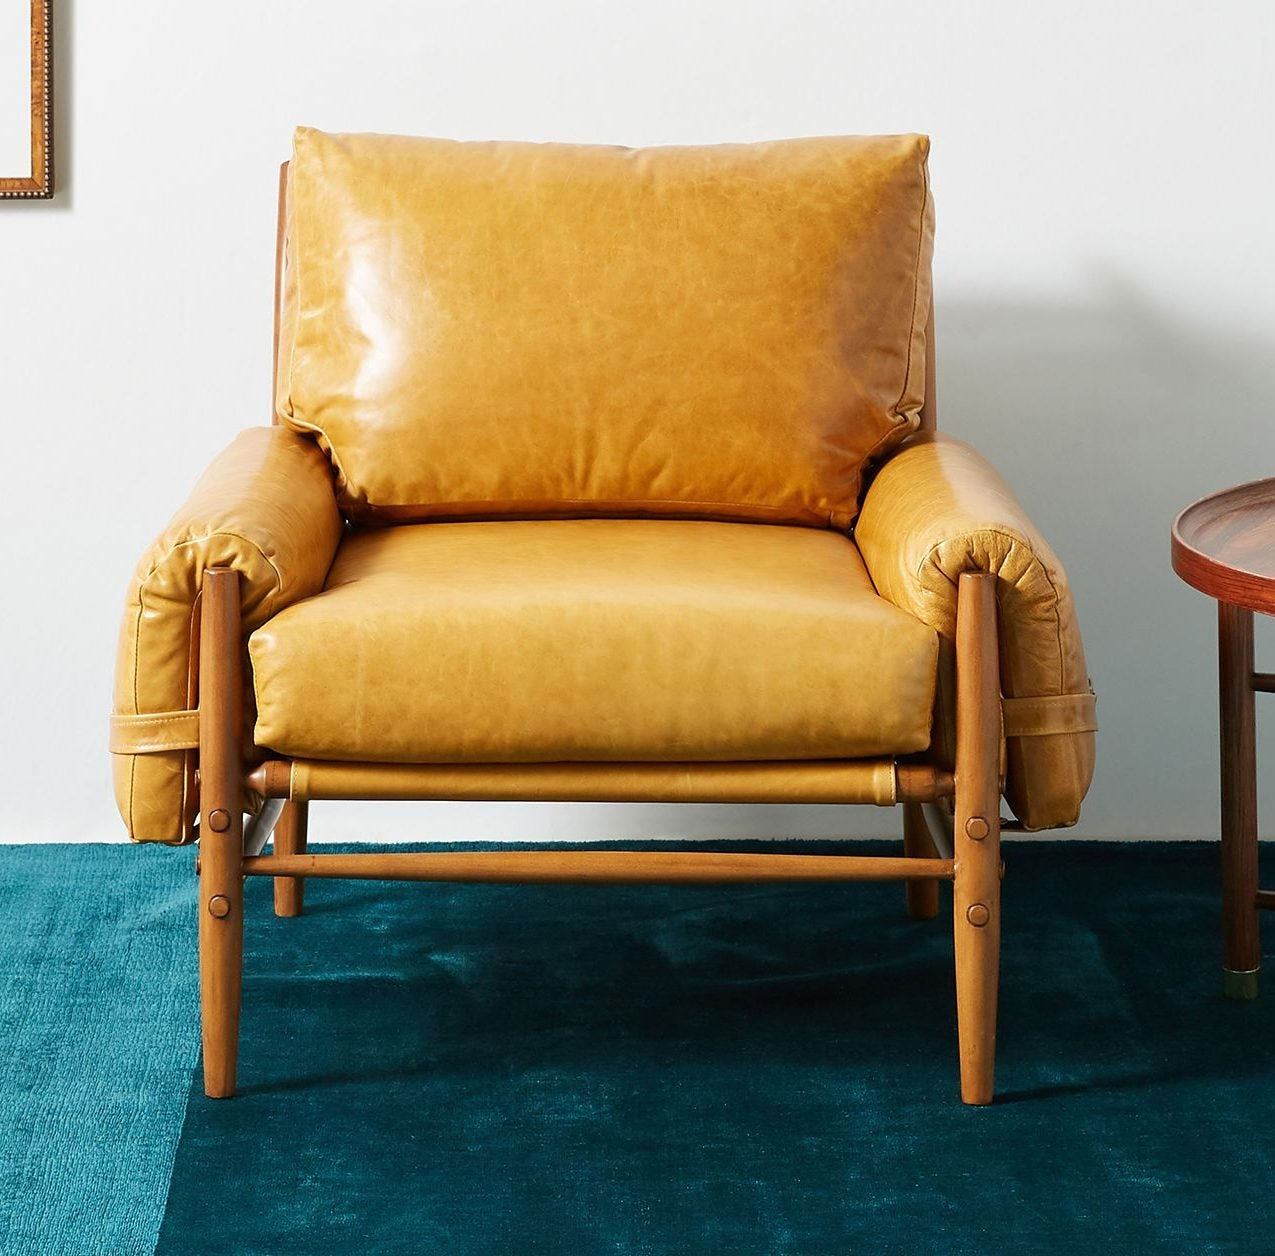 leather chair on teal rug